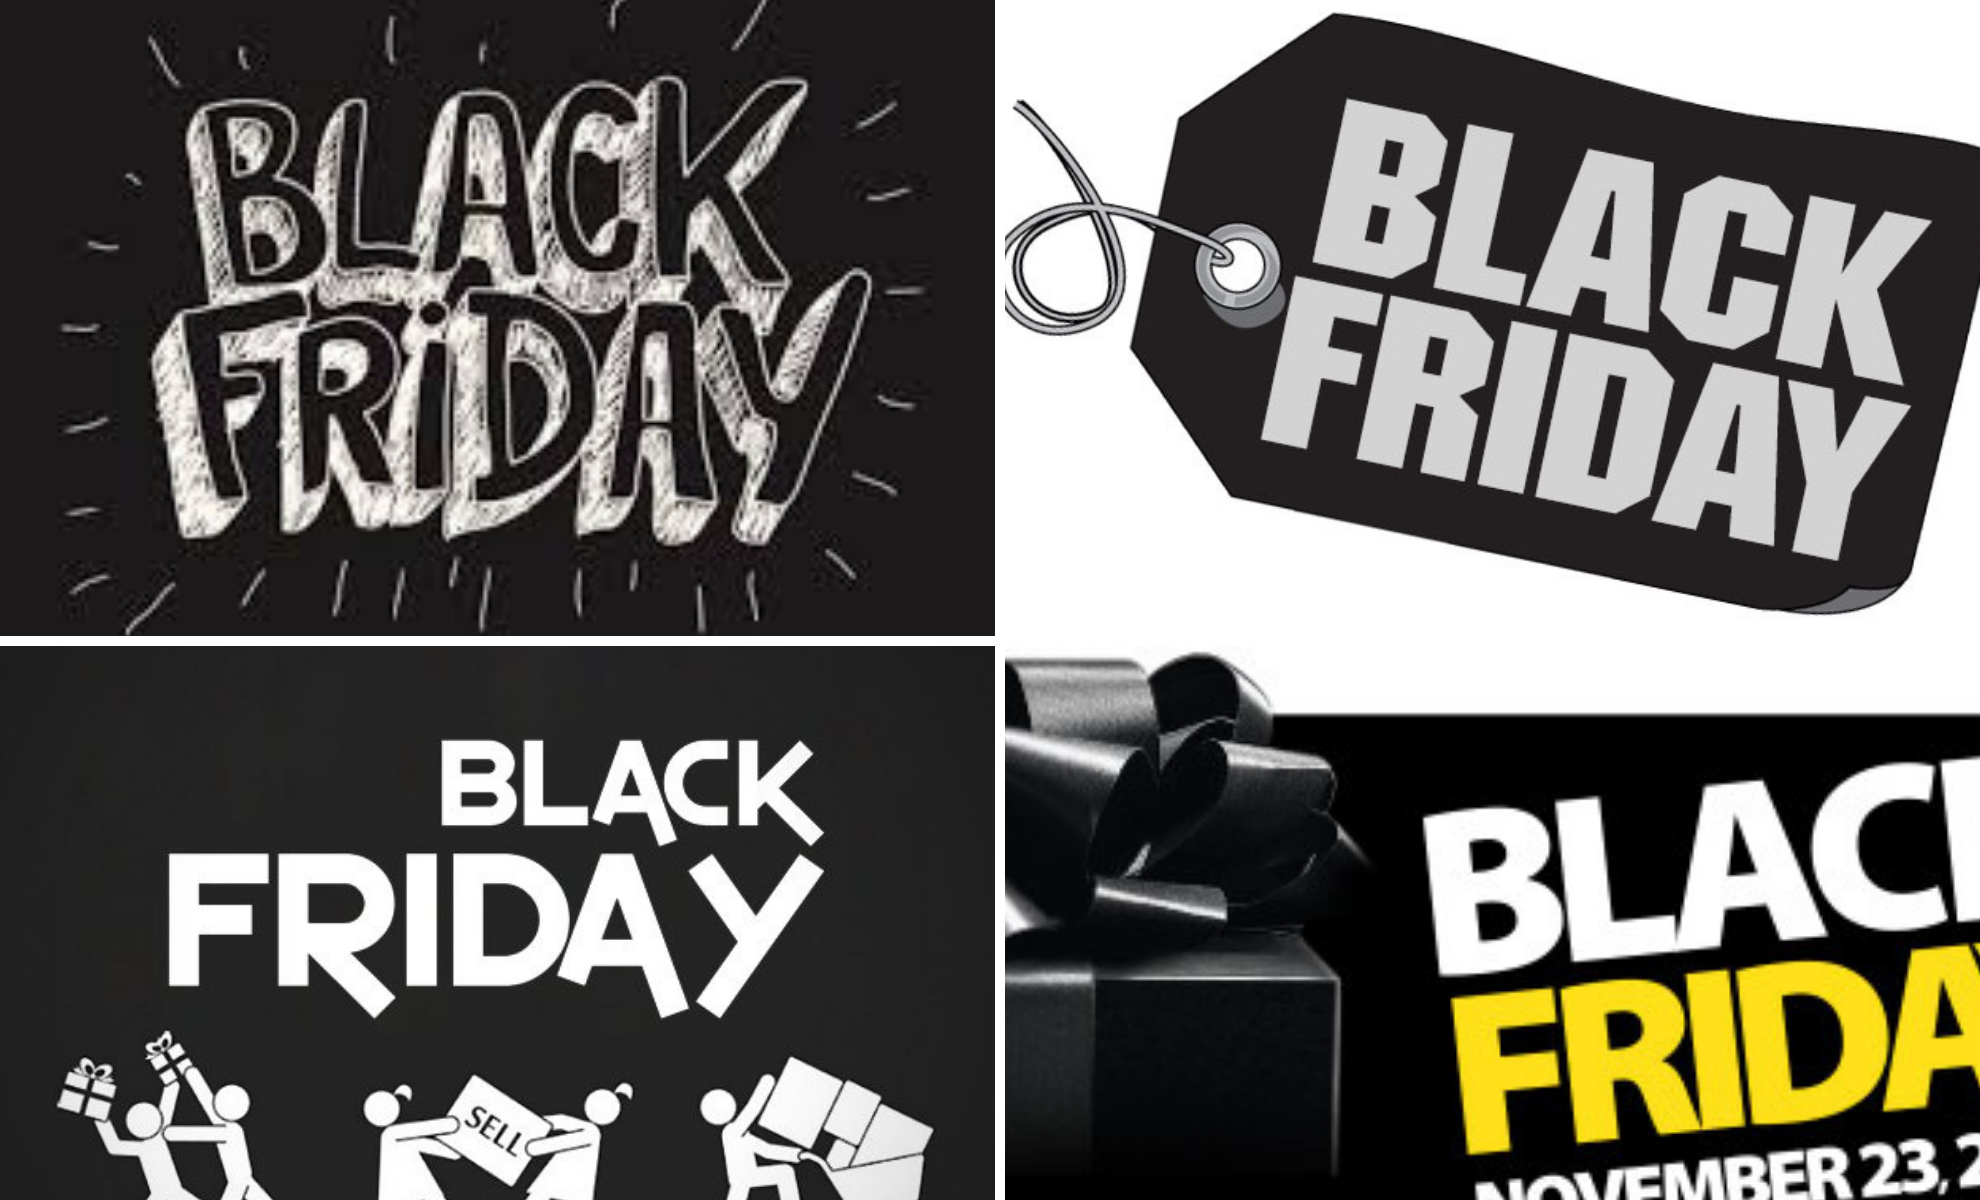 Even here in South Africa we get excited at the thought of Black Friday; this year it is on 23 November 2018. So how do you get ready to enjoy a successful day?